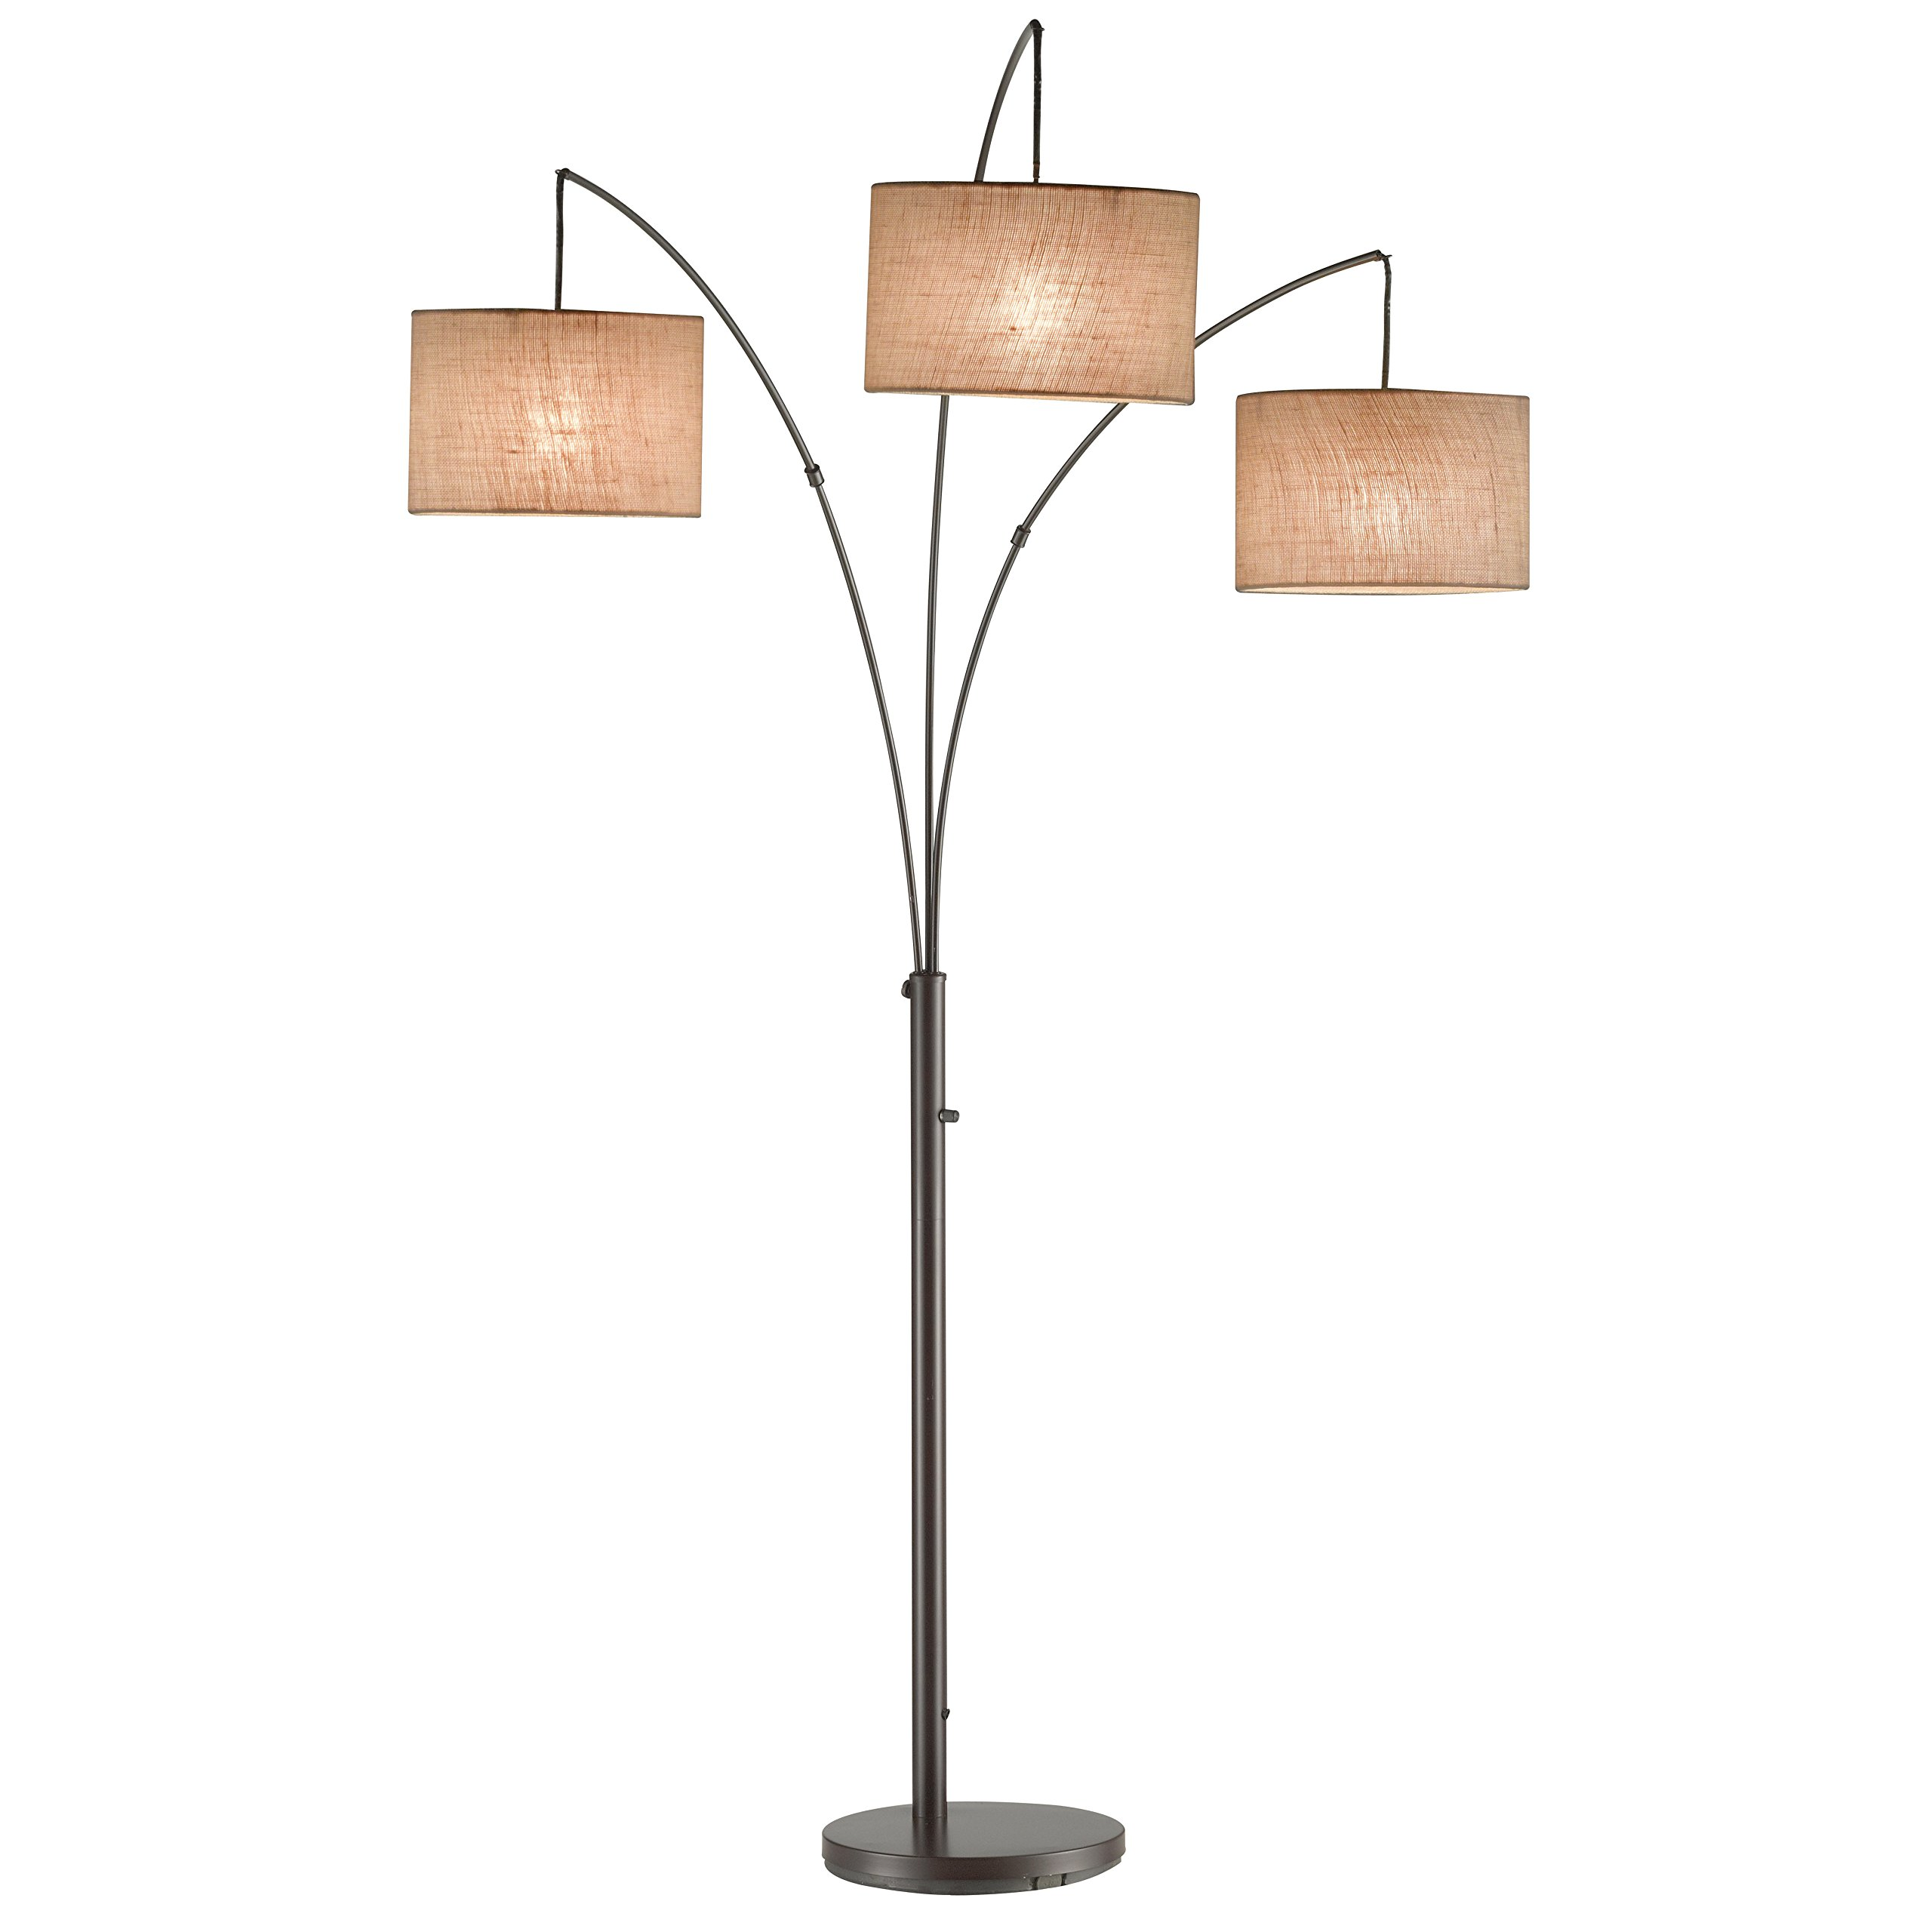 74 Inch Tall Modern Arc Floor Lamp with 3 Fabric Drum Shade - Antique Bronze Finish